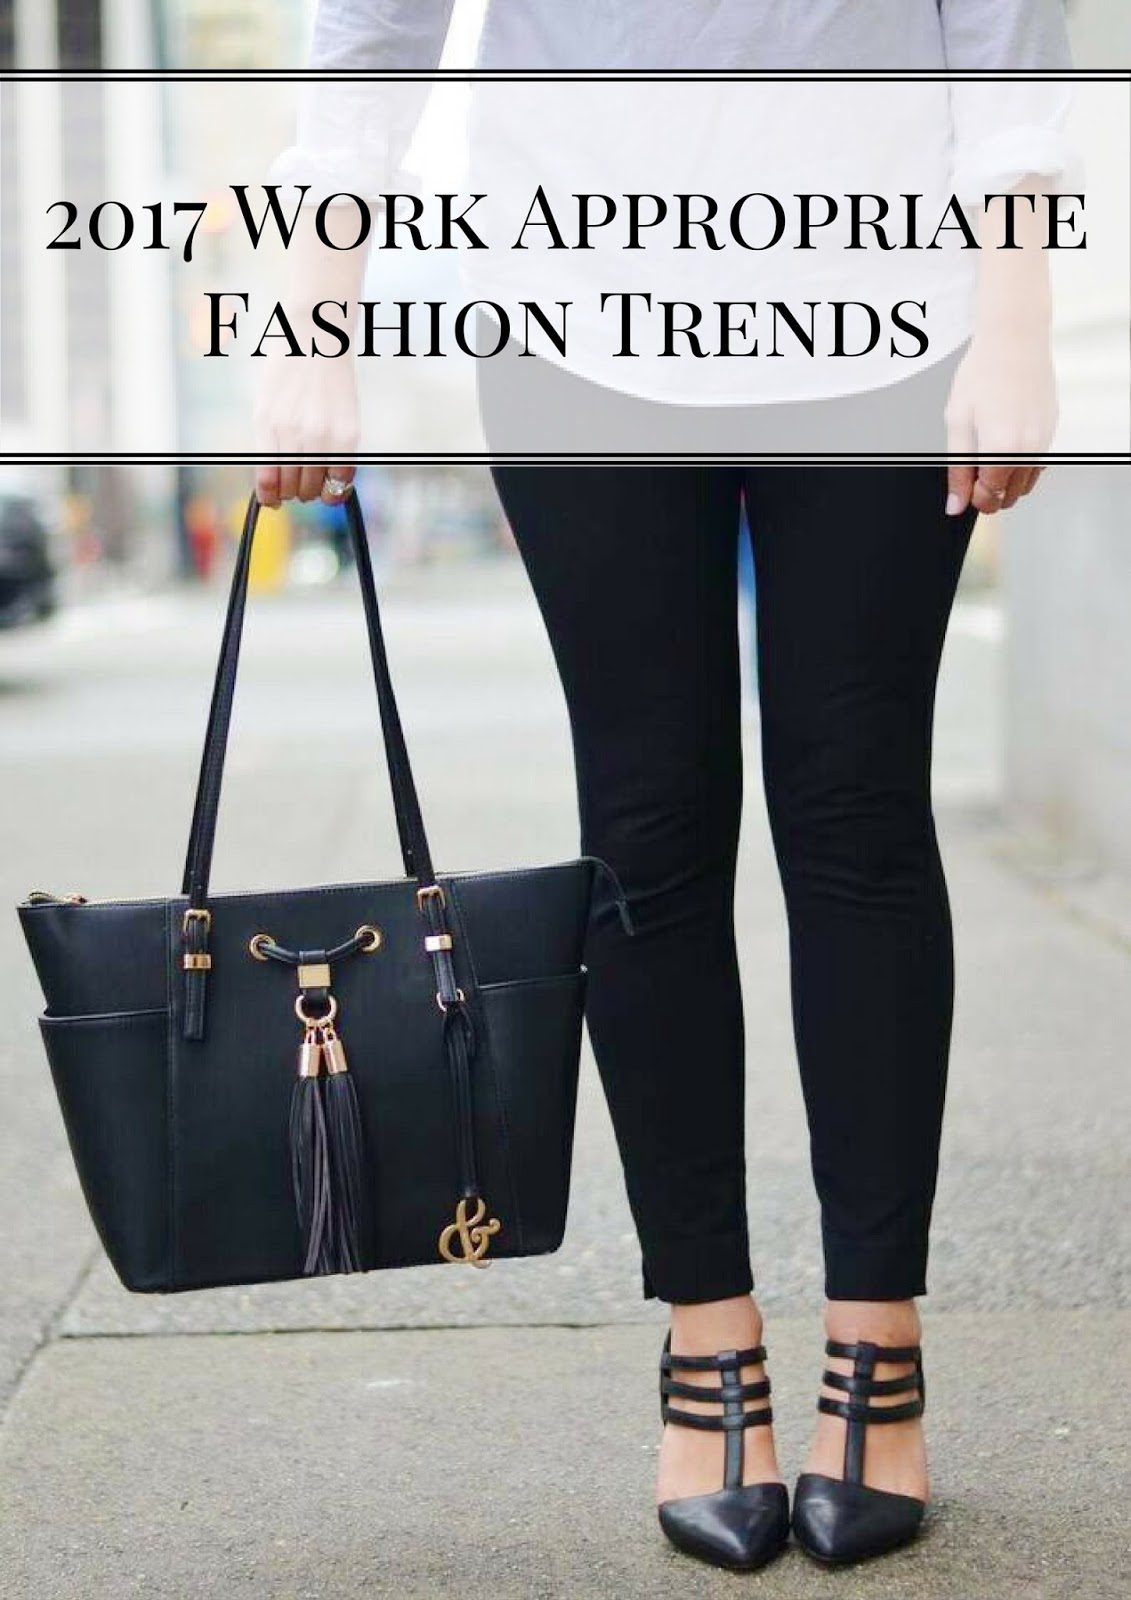 668f295d4e 2017 Fashion Trends You Can Wear to Work